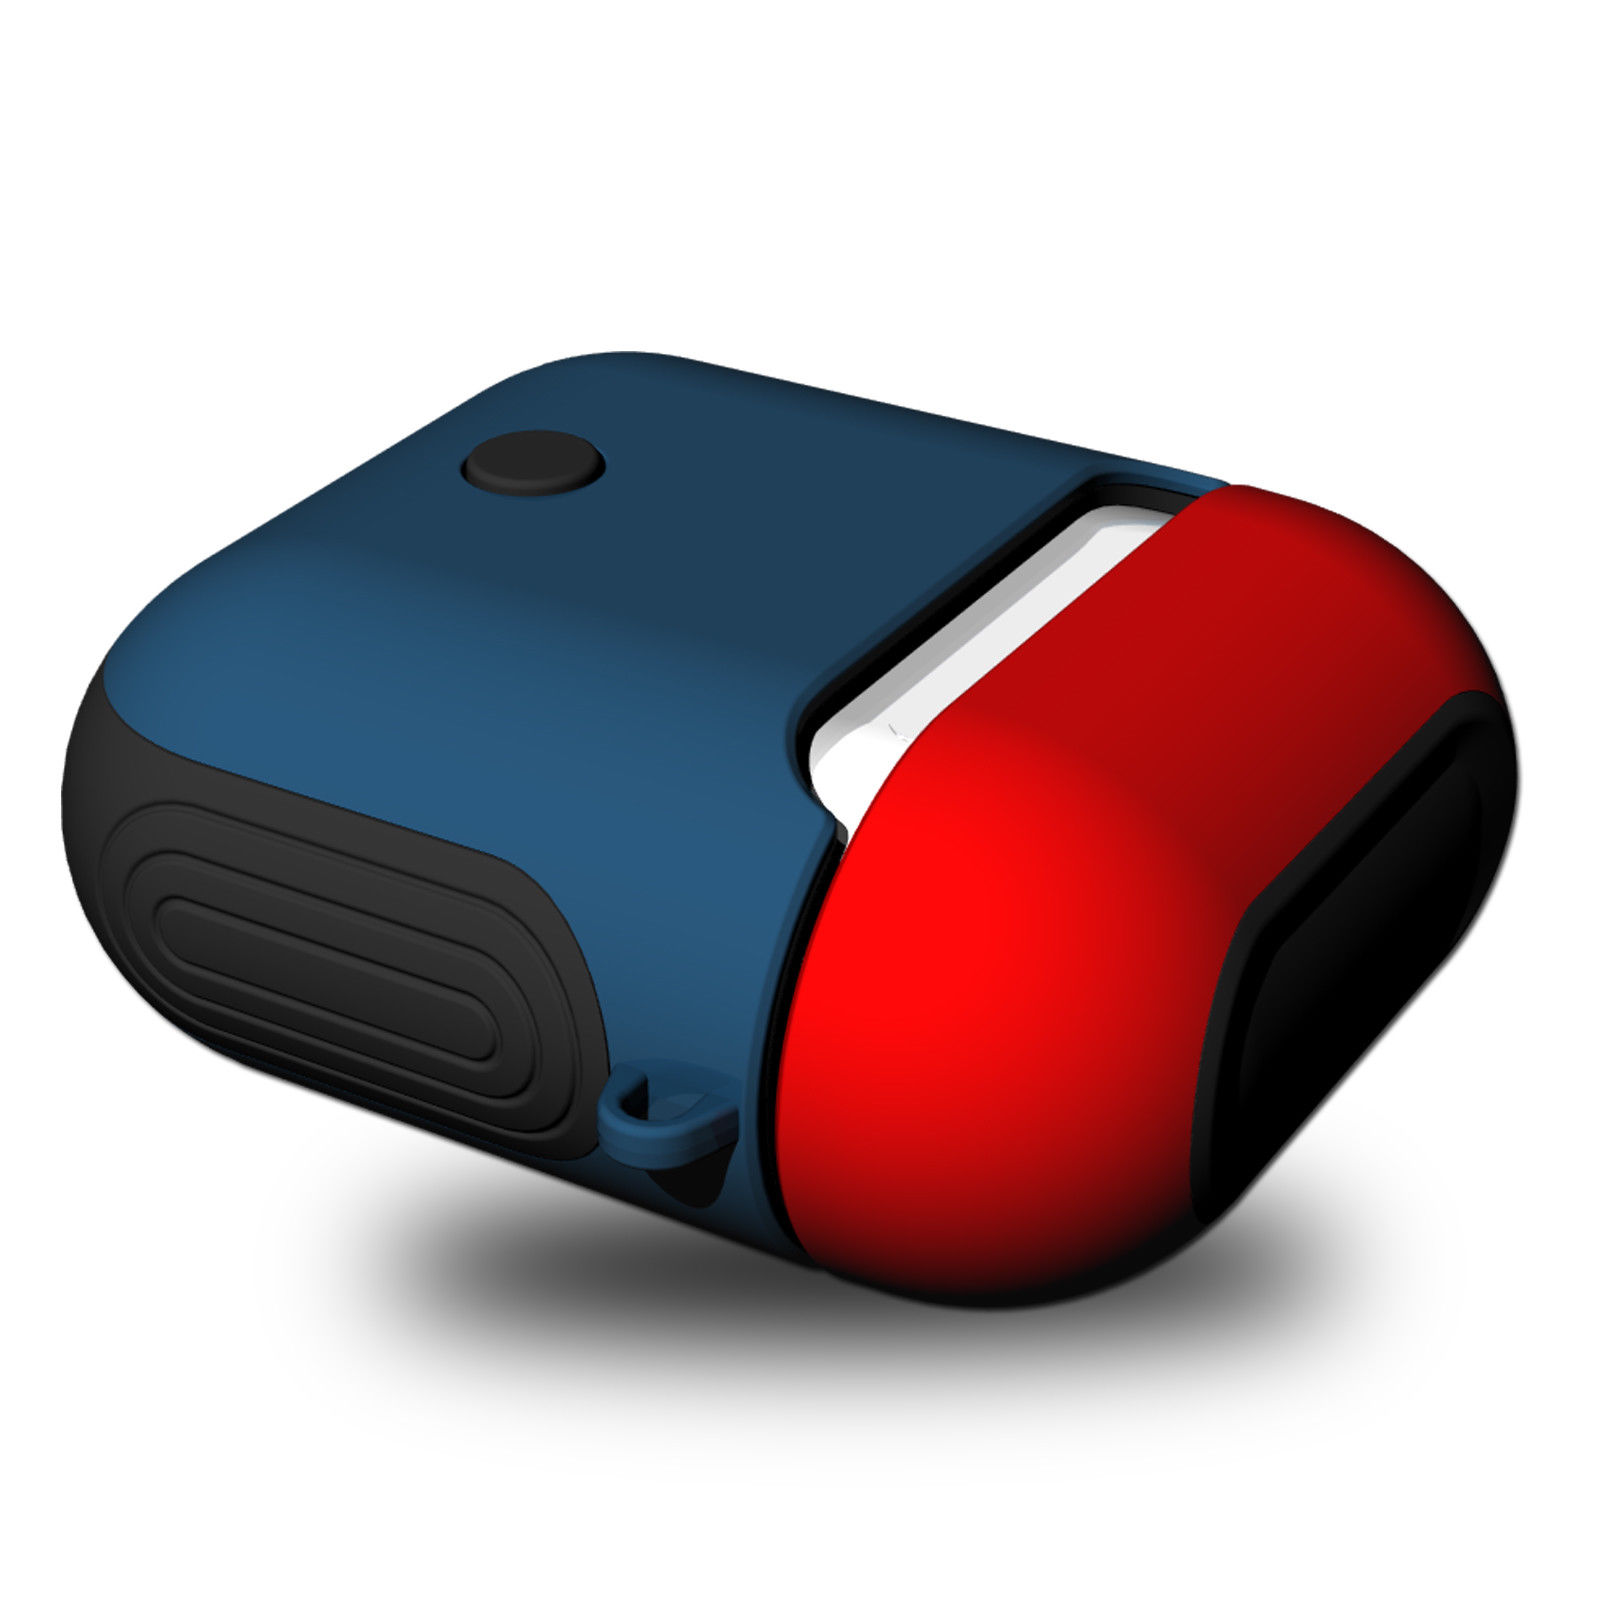 6bbe9410068 ... Apple Airpod Charging Case Red blue. AirPods Silicone Protective Cover  Red blue